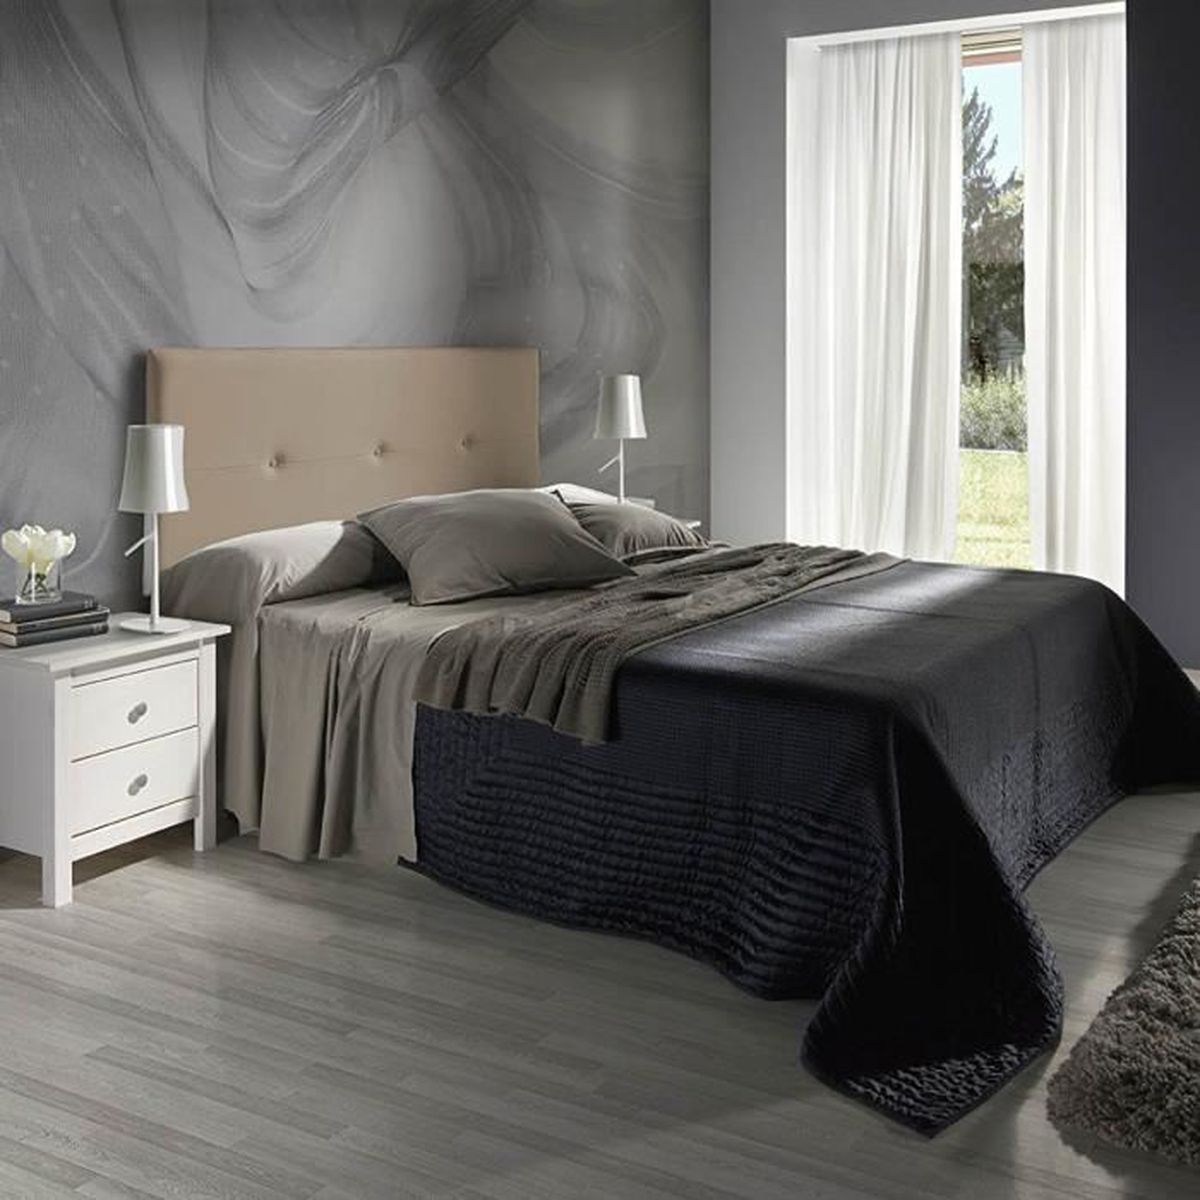 tete de lit 160 couleur taupe achat vente pas cher. Black Bedroom Furniture Sets. Home Design Ideas